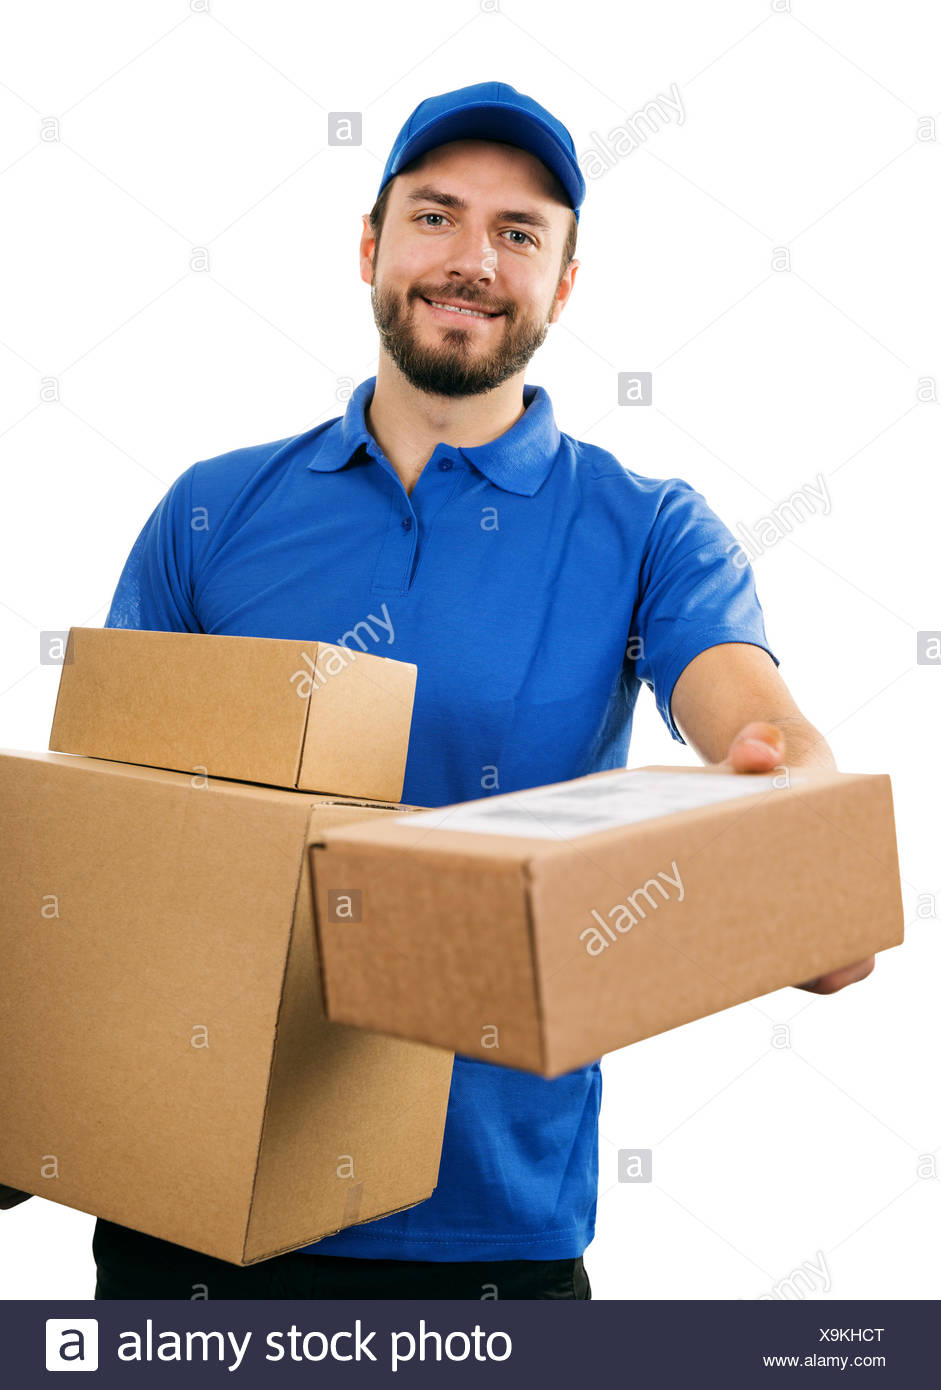 delivery service courier giving cardboard shipping box - Stock Image